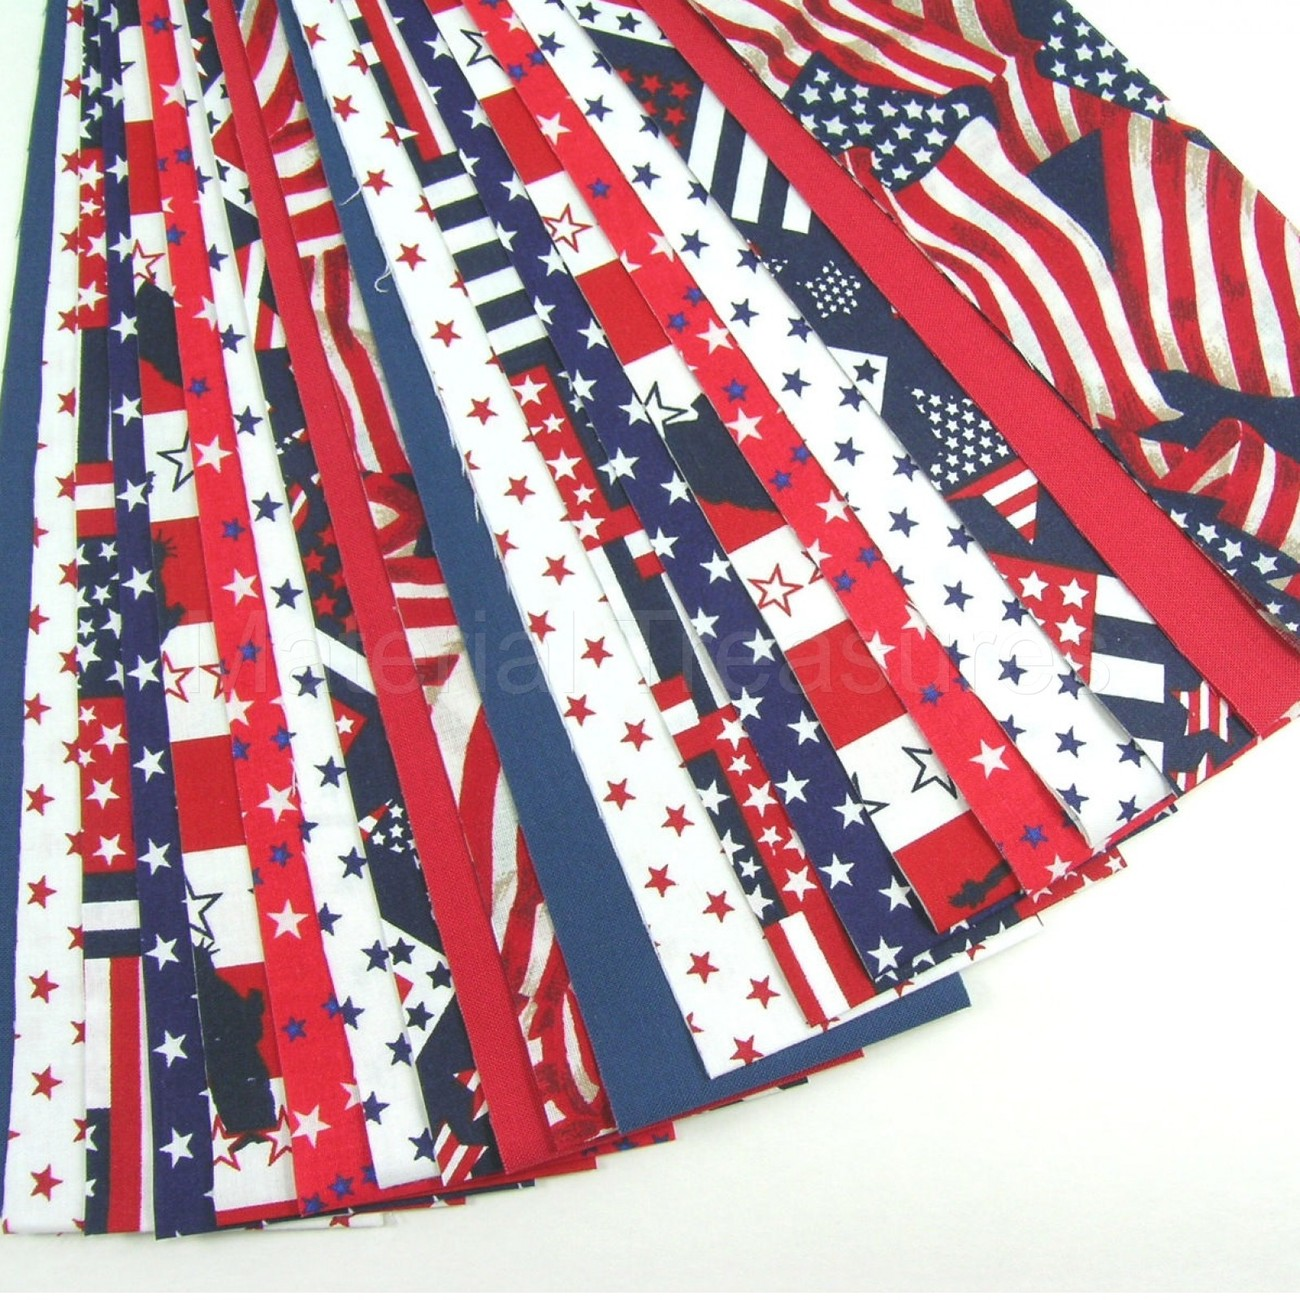 Patriotic Cotton Quilt Fabric Jelly Roll 20 Strips Red